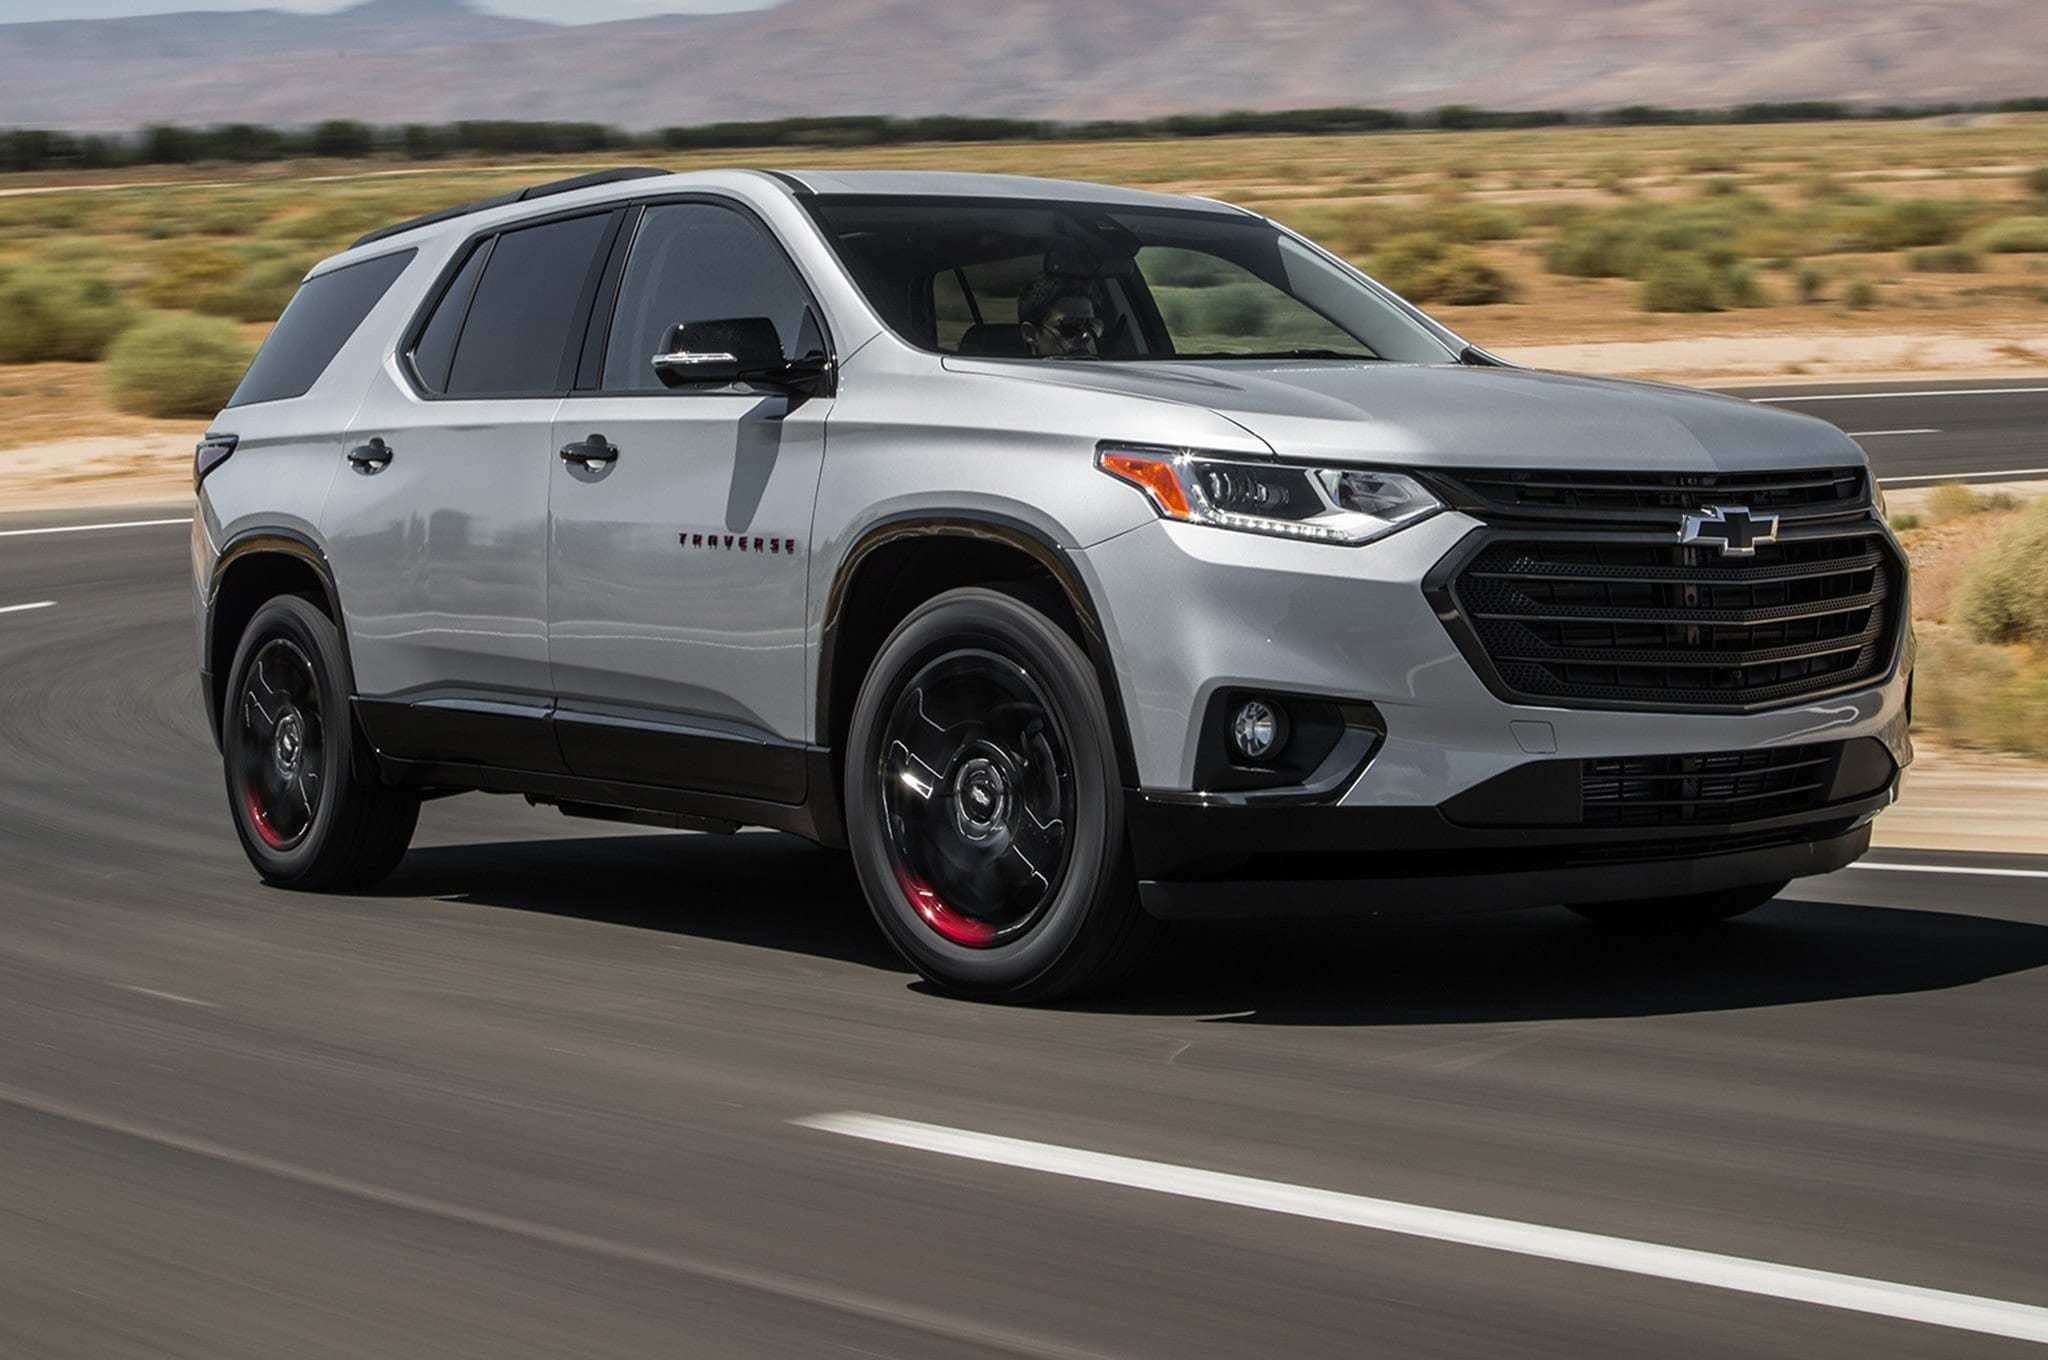 88 All New Chevrolet Traverse 2020 New Concept